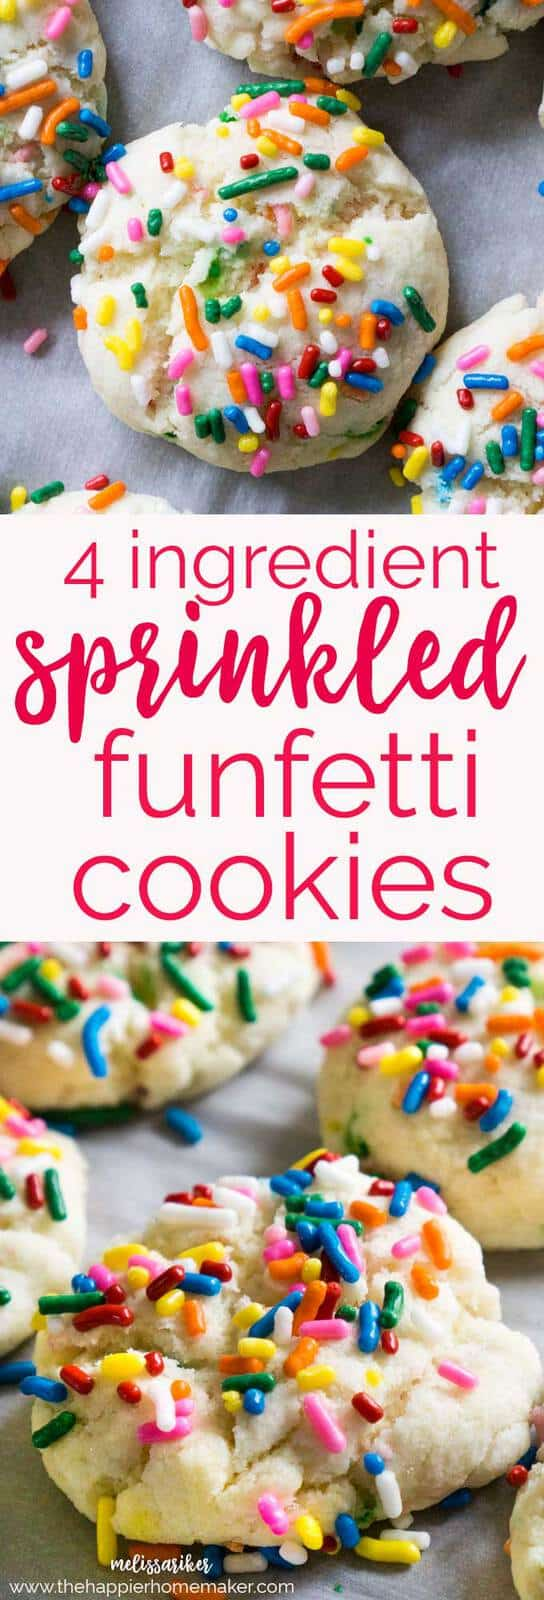 Easy 4 Ingredient Funfetti Cookies are delicious, colorful, and a huge hit with the kids. One of my favorite easy dessert recipes.